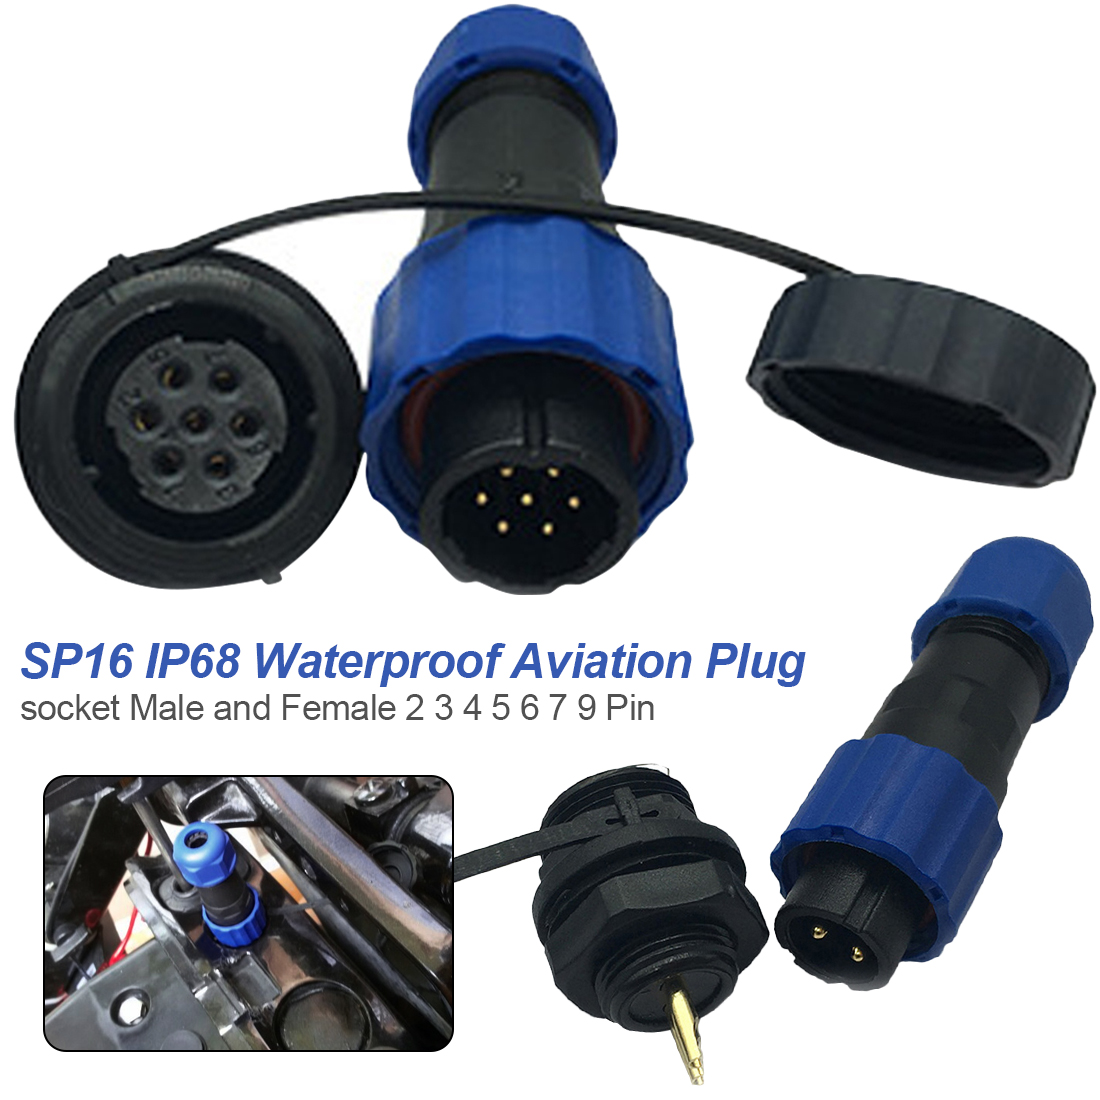 5 Pin Waterproof Female Plug Cable Connector IP68